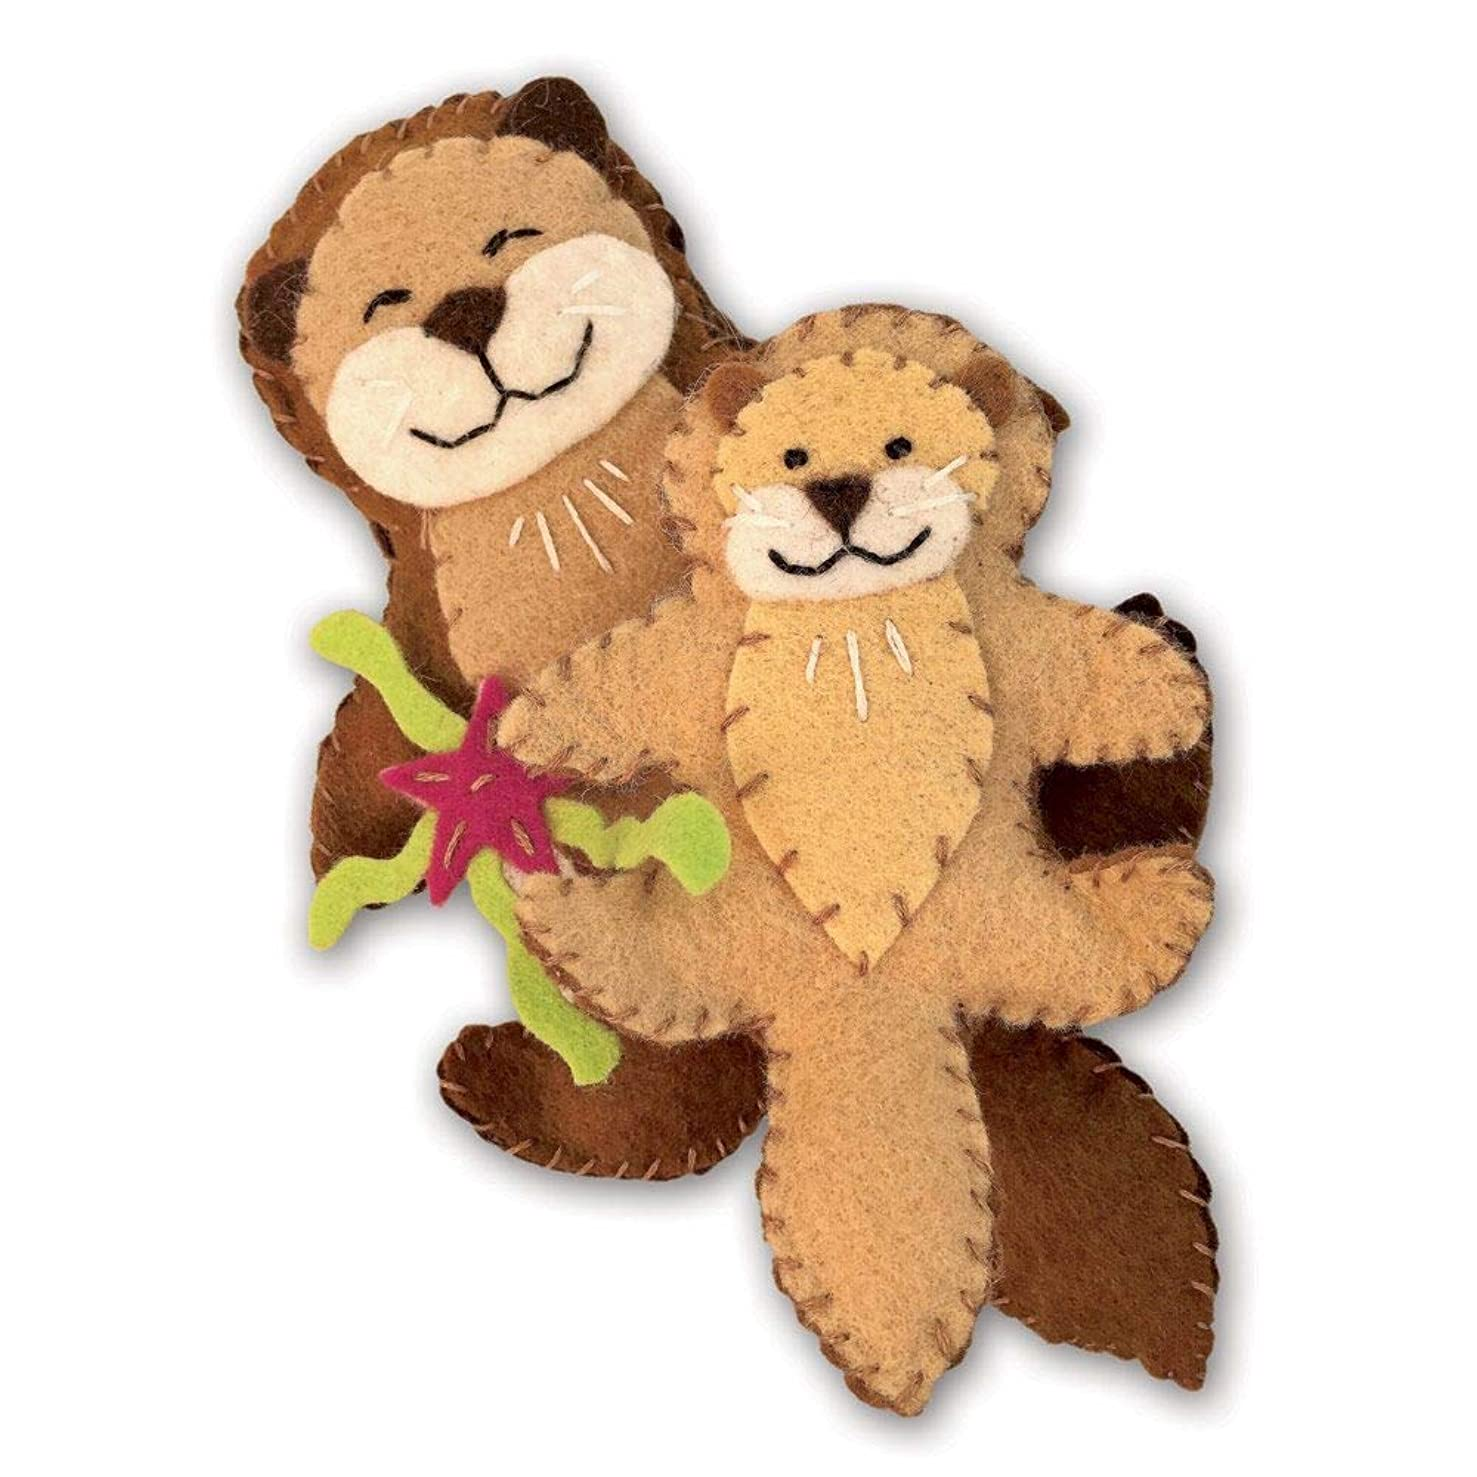 Heidi Boyd   Otterly Adorable   Whimsy Kits   Enjoy Creating Two Adorable Otter Friends with This All Inclusive Felt Craft Sewing Kit Age 13+